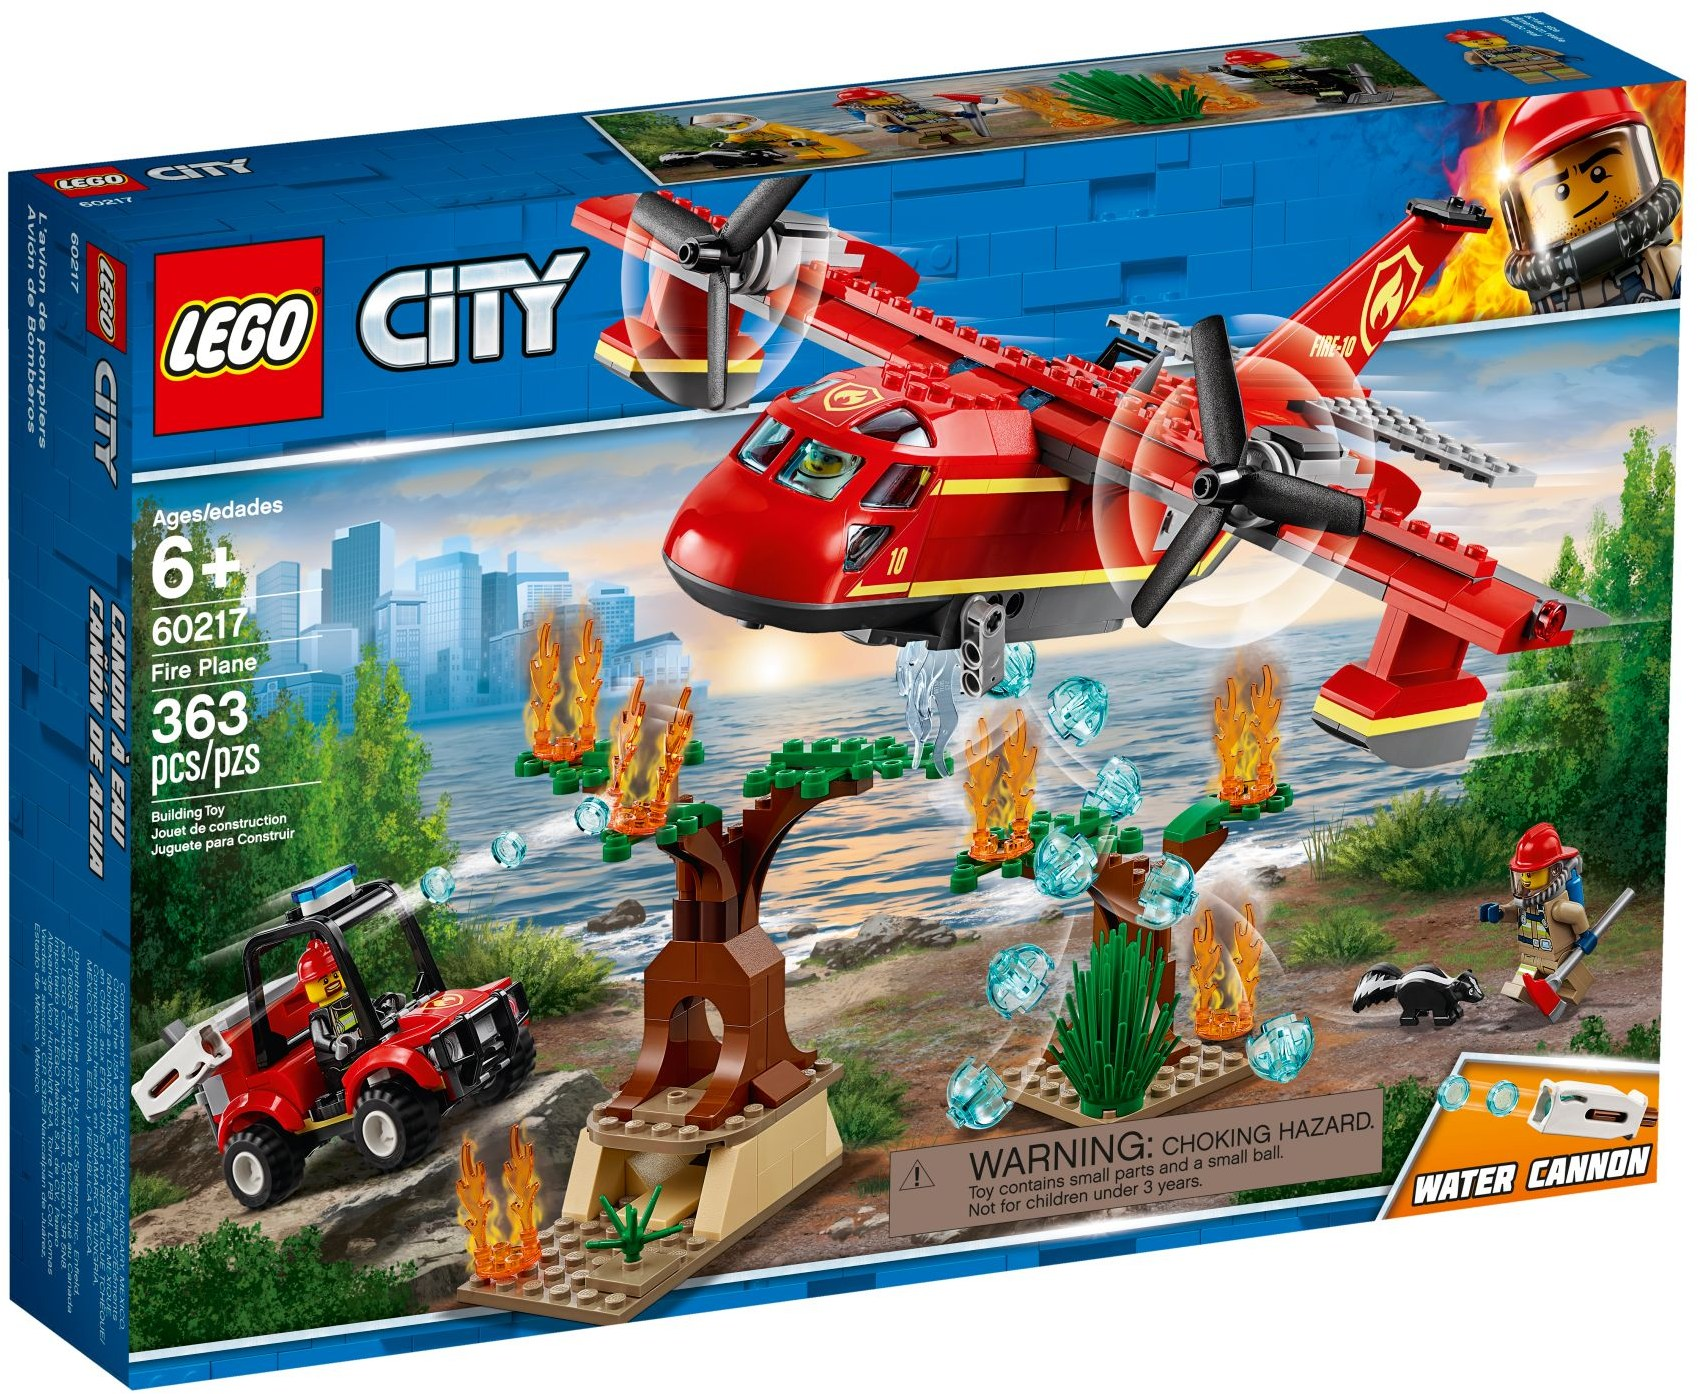 LEGO Town Sets: 60217 City Fire Plane NEW